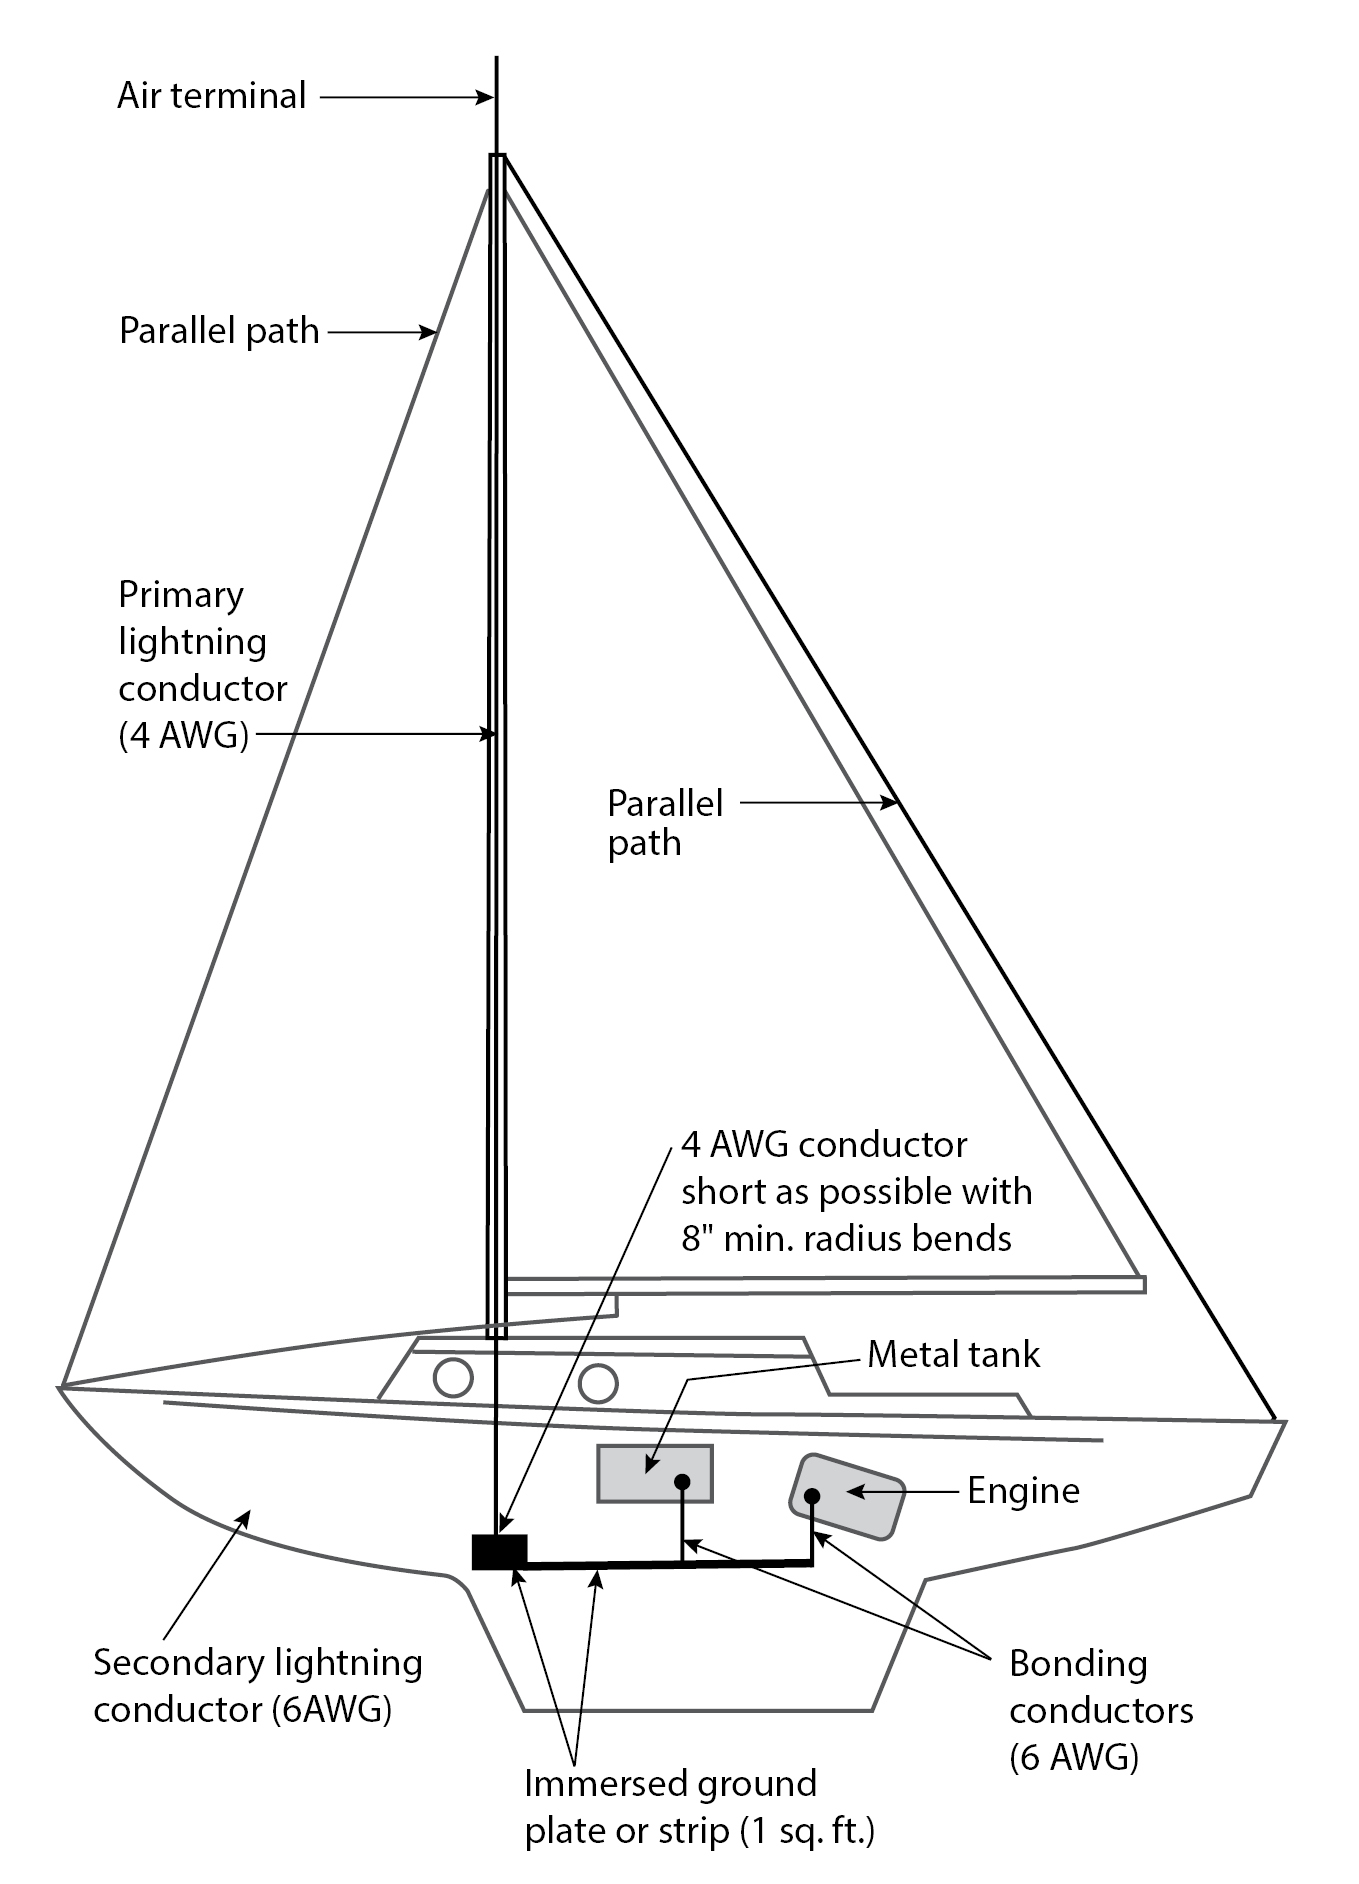 An approach to a modern lightning protection system the in 2006 the american boat and yacht council abyc technical information report te 4 3 4 recommended the following swarovskicordoba Choice Image